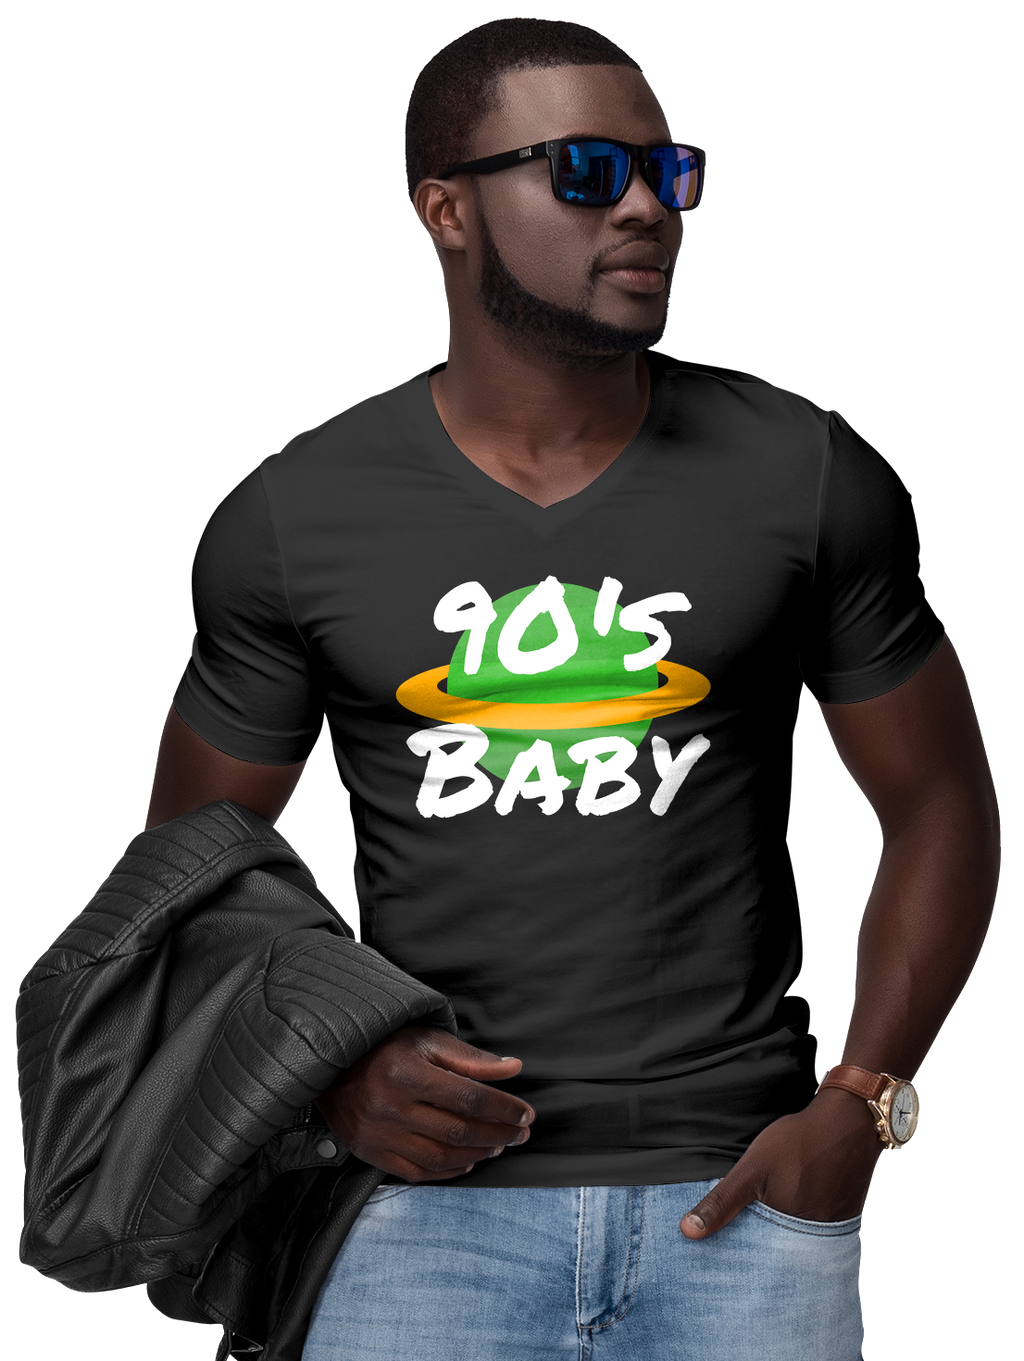 90's World Baby V-Neck T-Shirt | Shirts | BFY Apparel | Streetwear & More